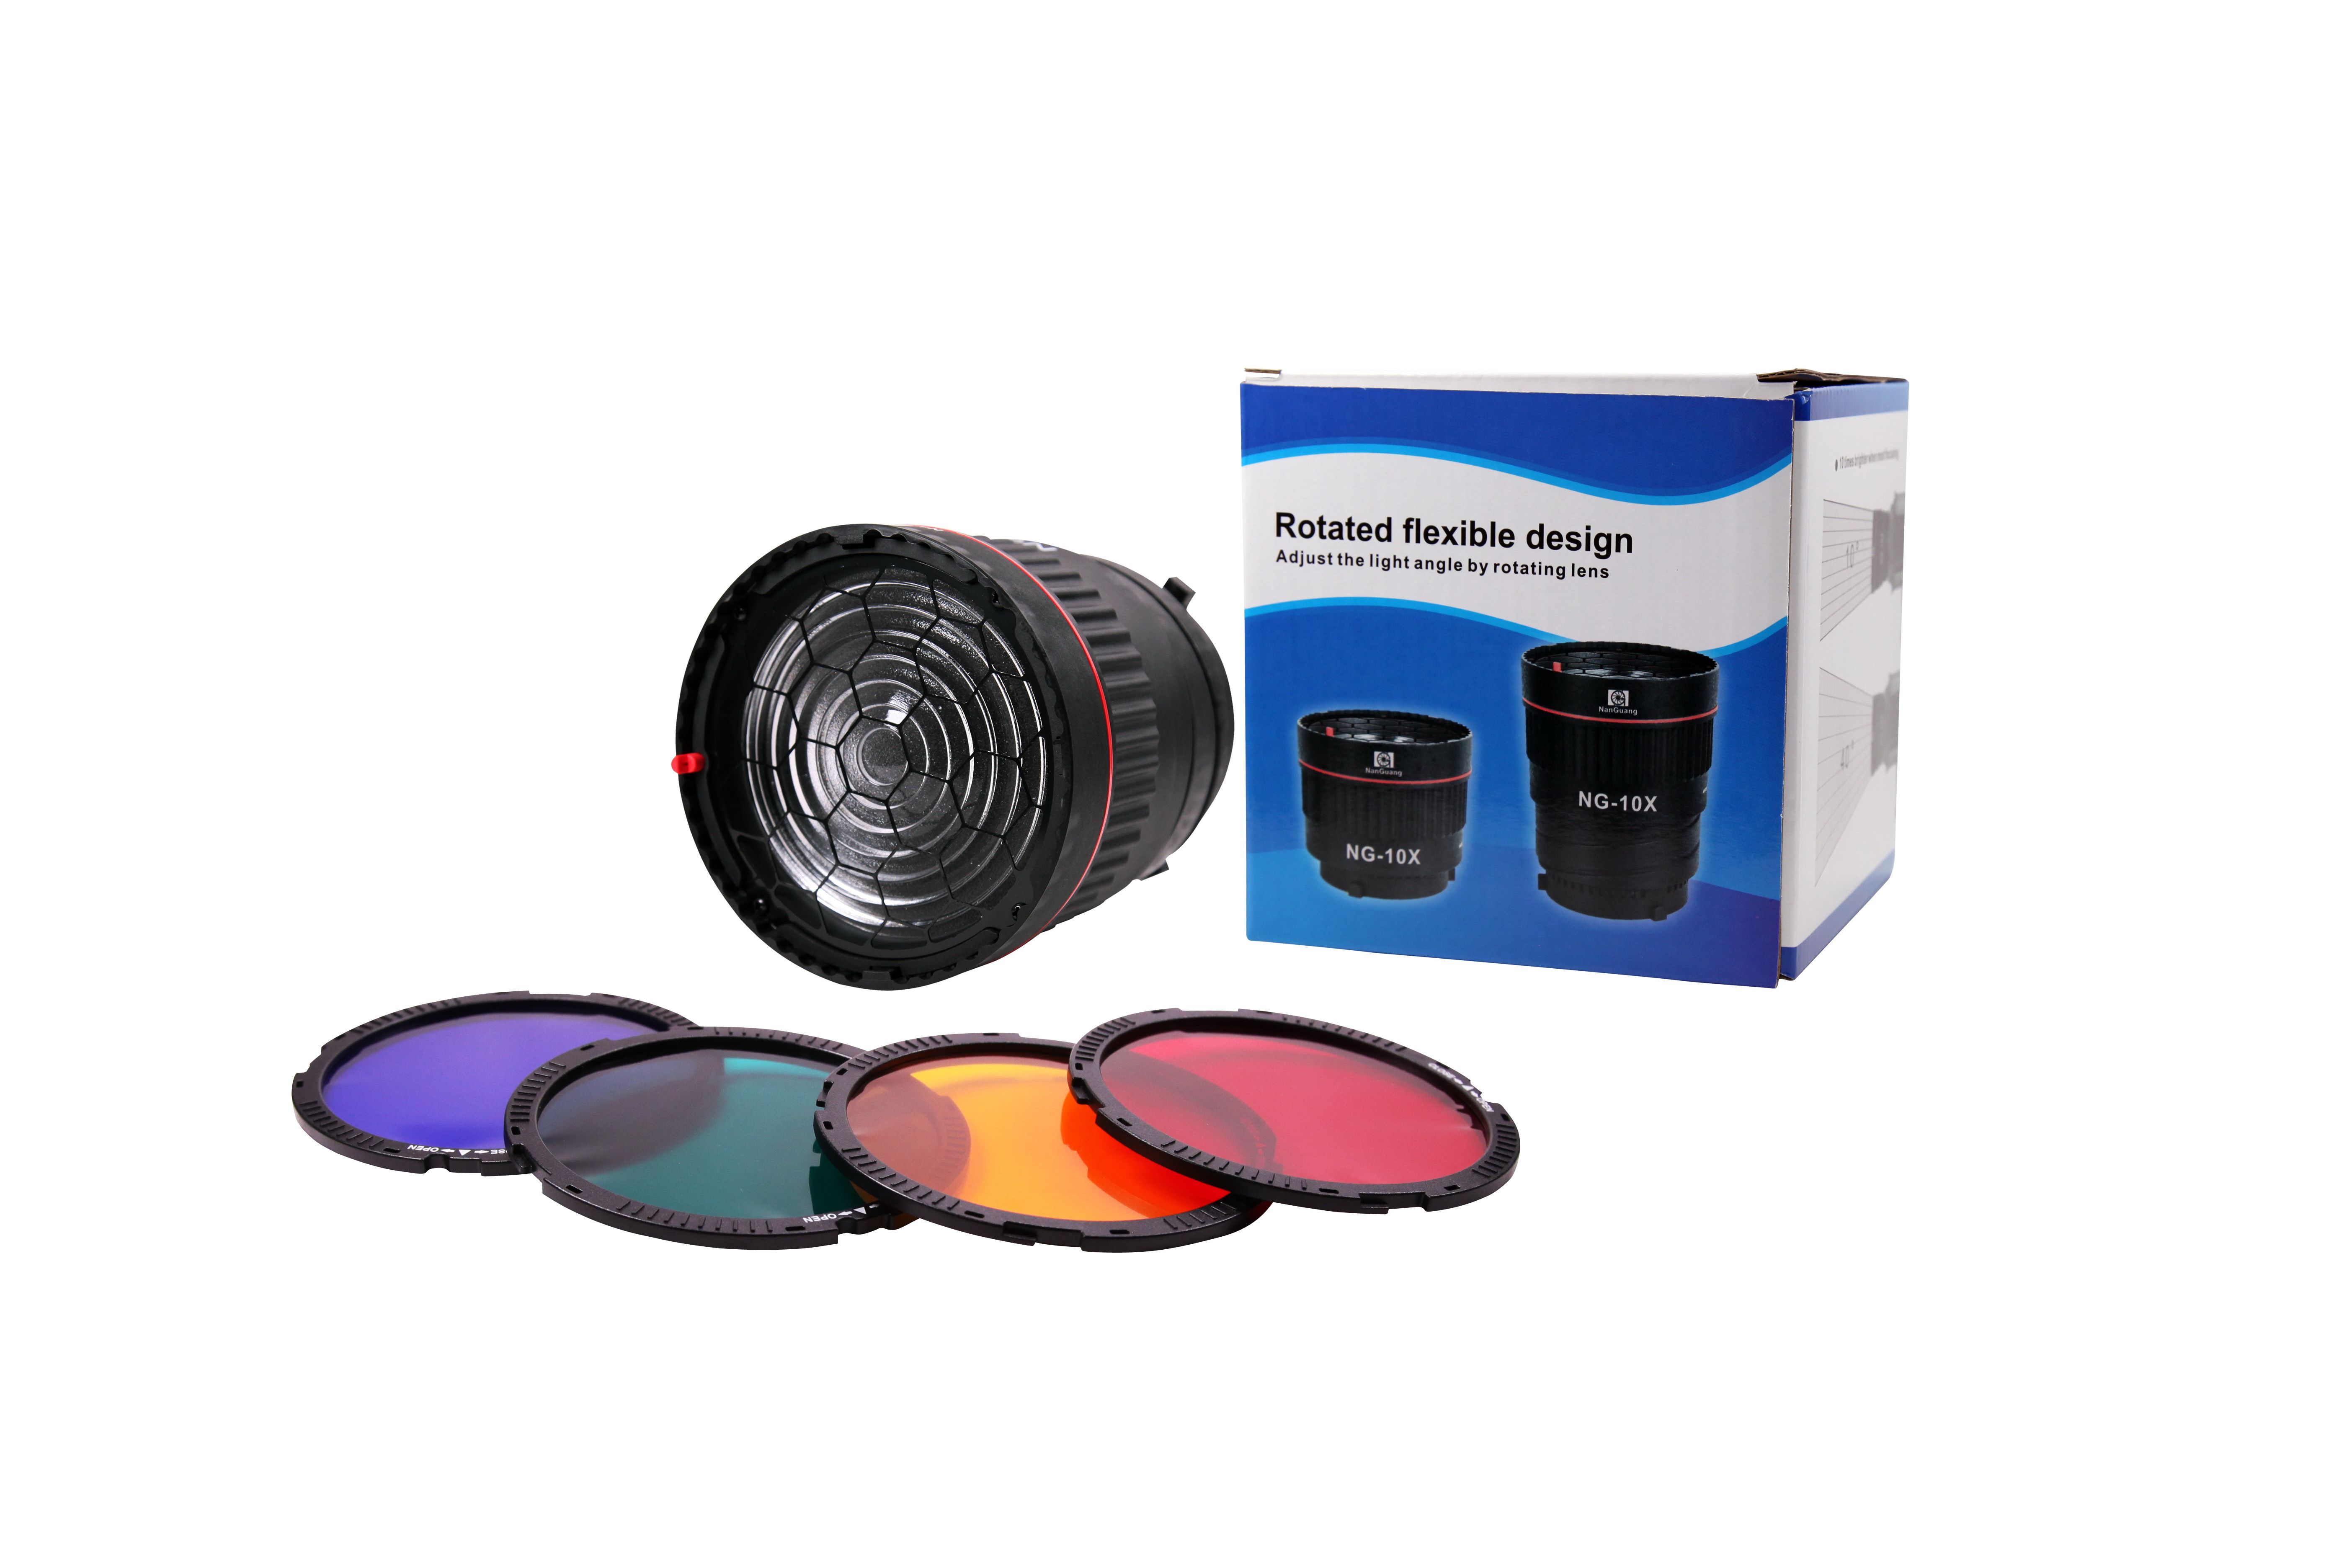 CN-10X ( NG-10X ) STUDIO LIGHT FOCUS LENS + COLOR FILTERS KIT